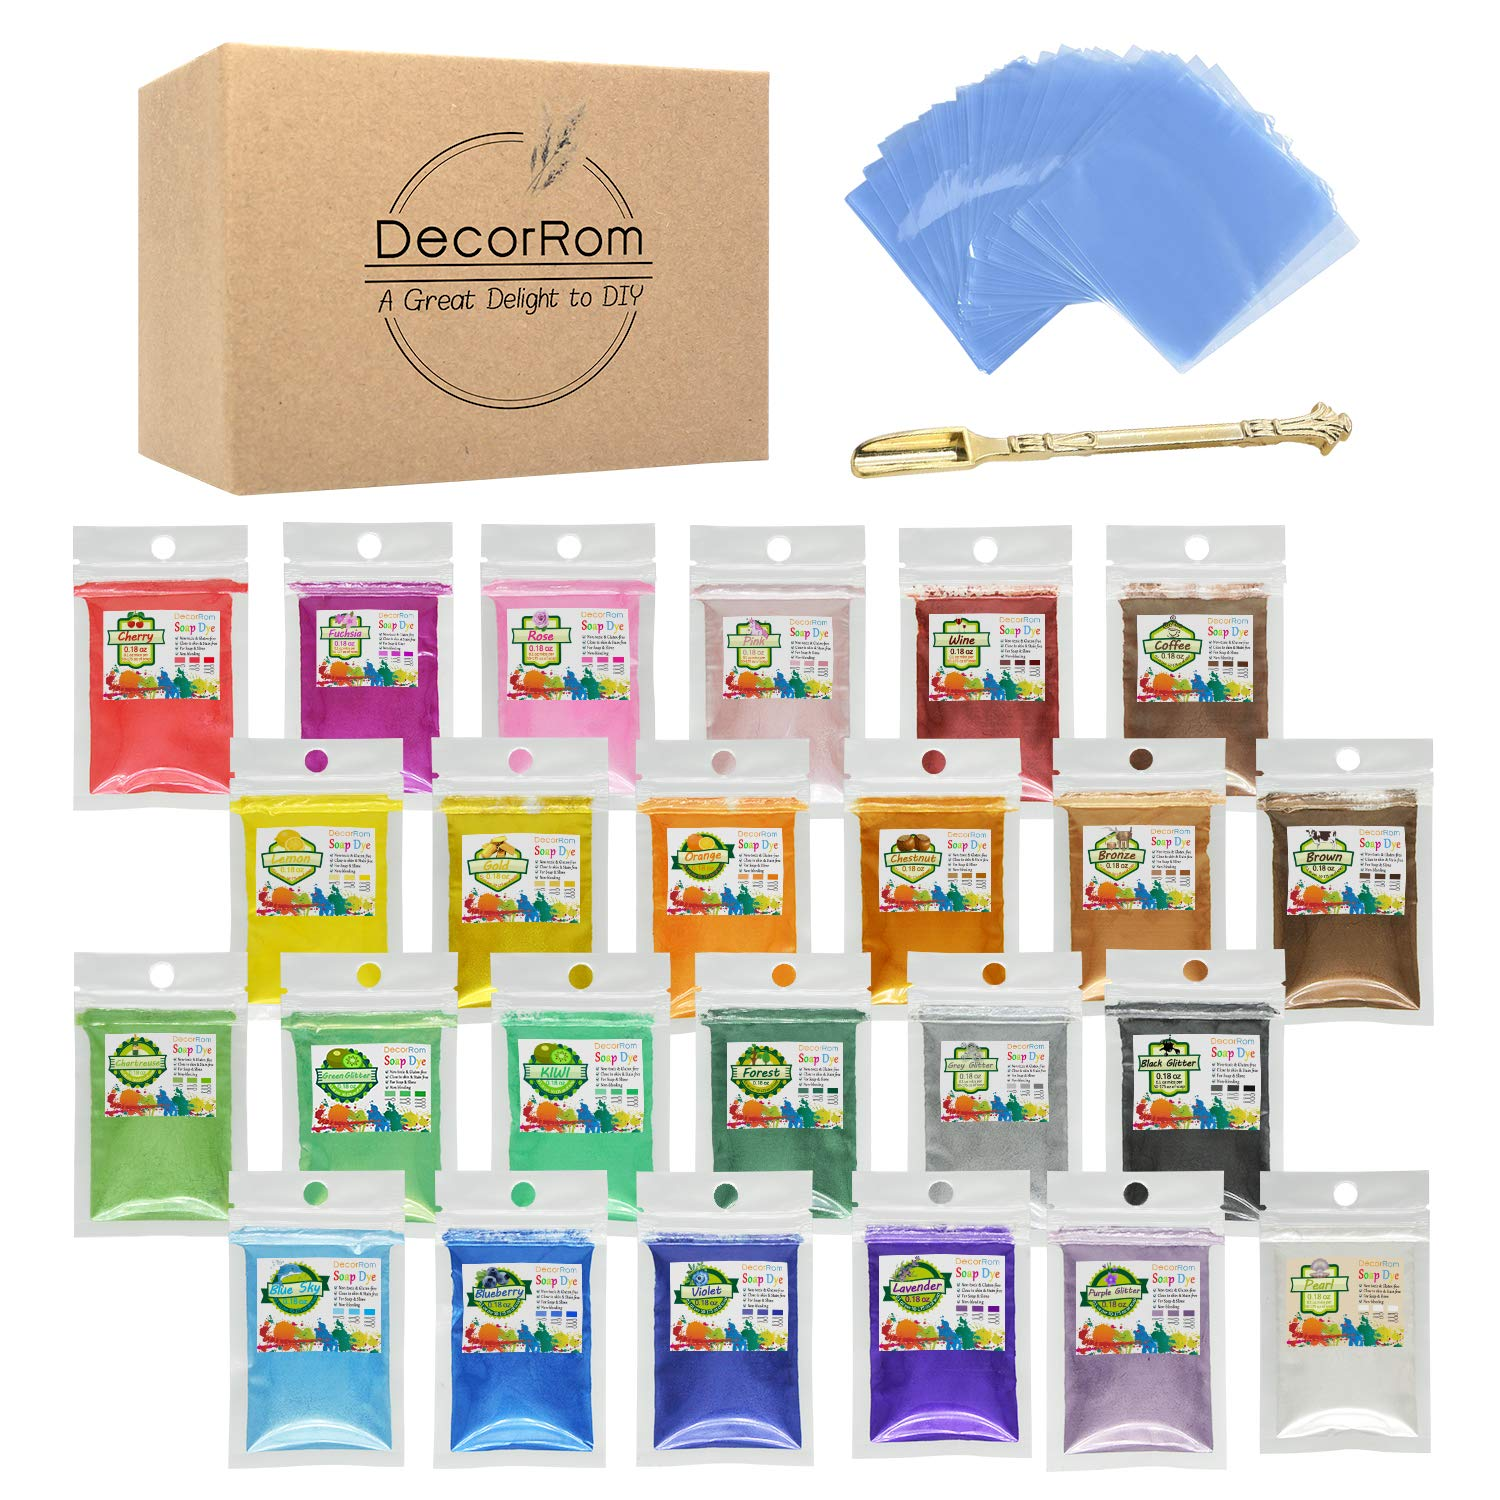 Mica Powder - 24 Color Soap Dye with 100 Shrink Wrap Bags, 1 Spoon - Skin Safe Soap Colorant Pigments for Soap Making Supplies-Cosmetic Grade Colorant for Slime,Bath Bombs,Epoxy Resin